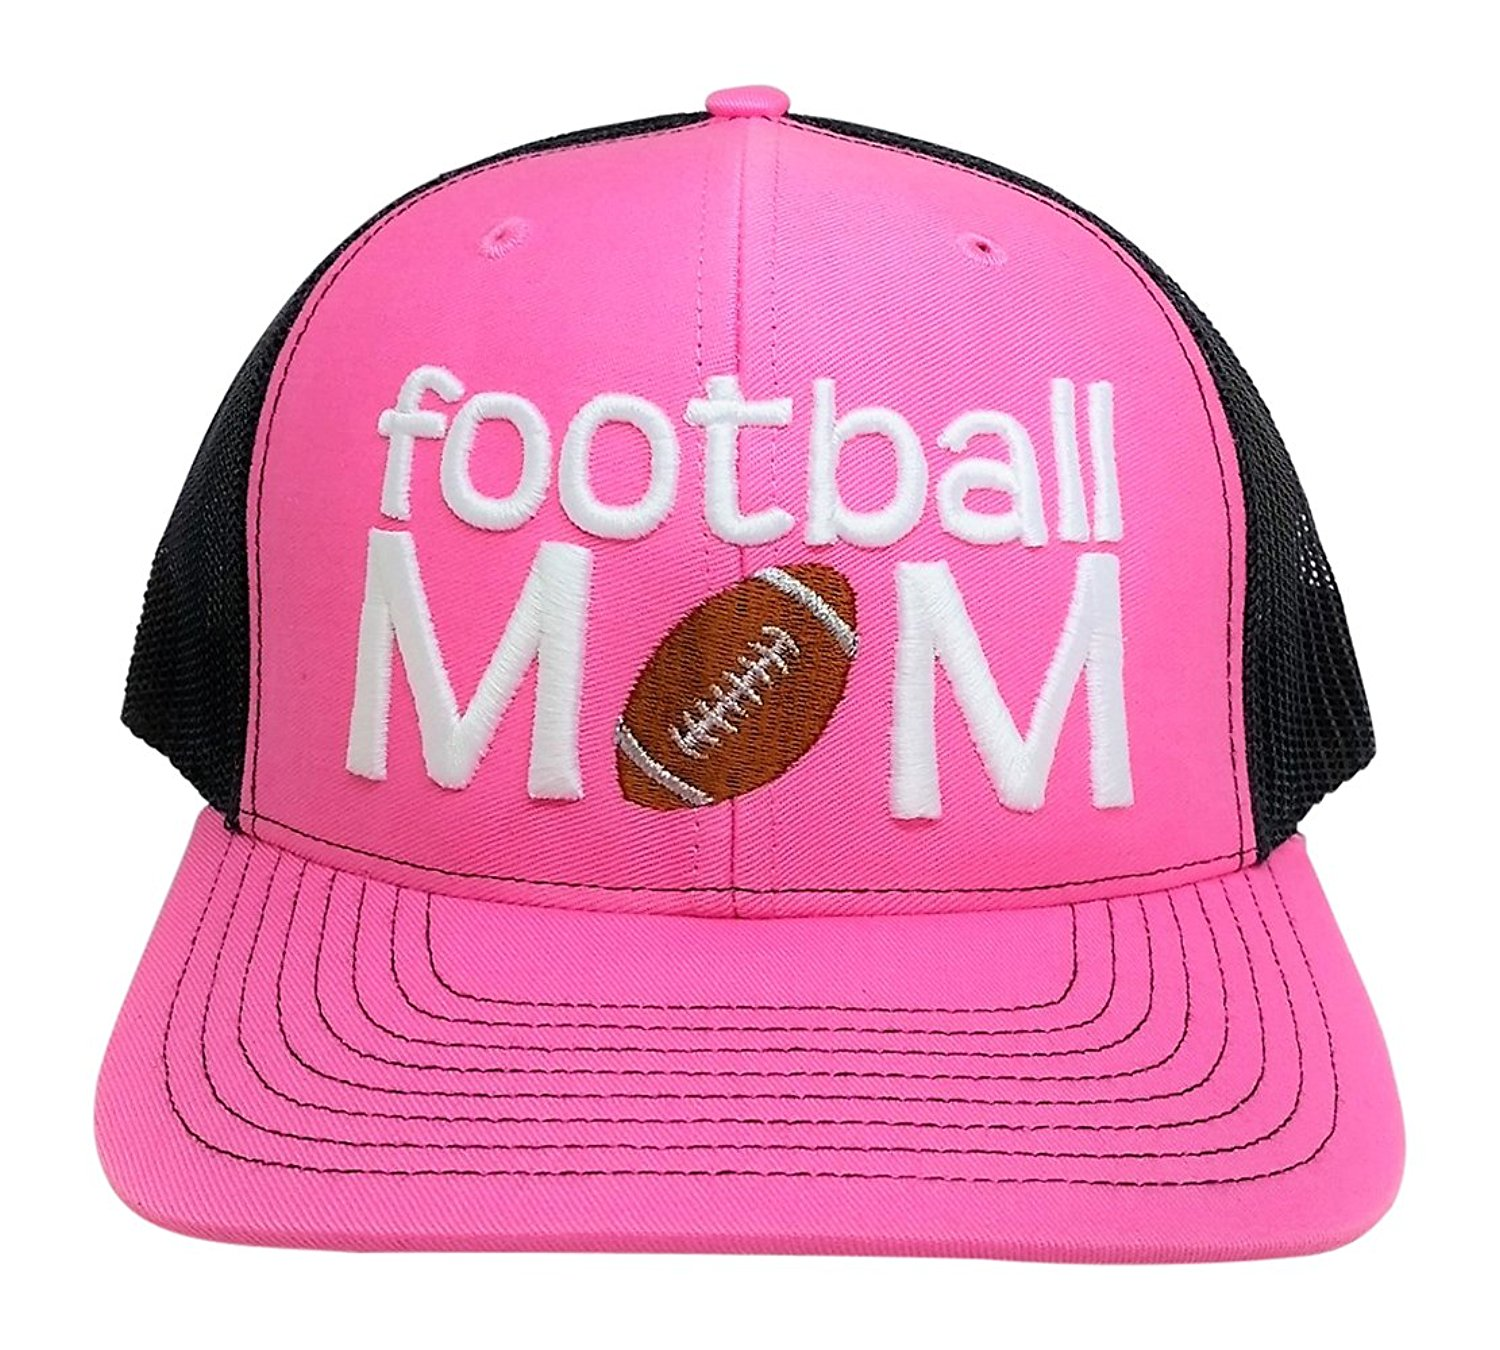 95c6da1e Get Quotations · Loaded Lids Women's Football Mom Puff Embroidered Bling  Trucker Cap